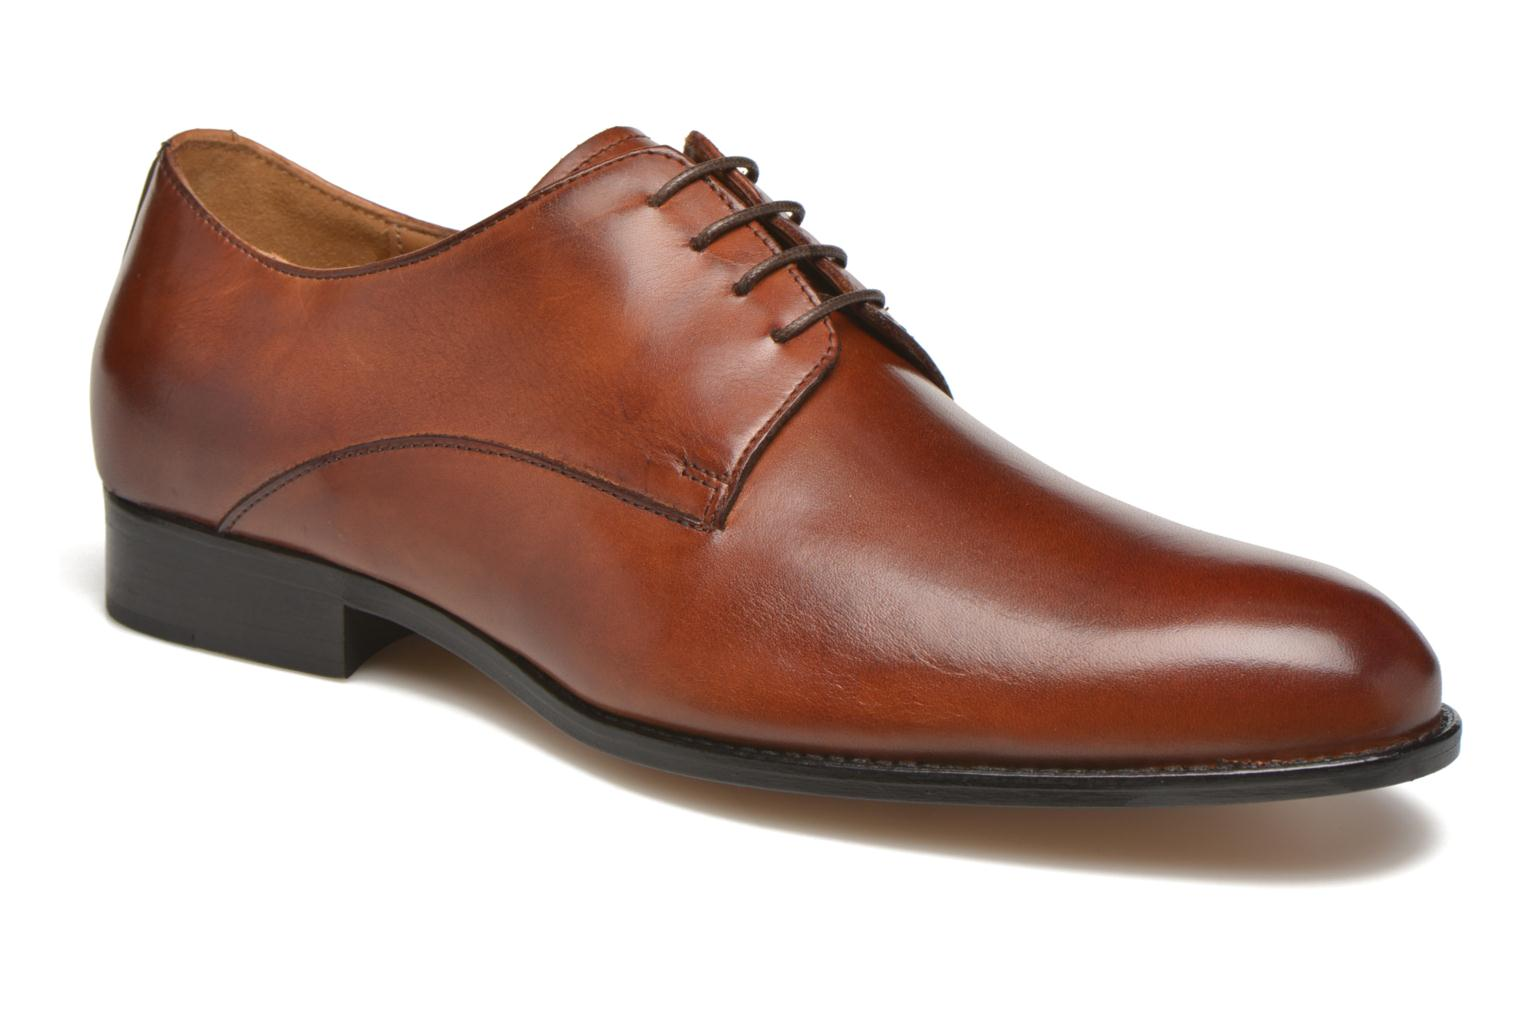 Marques Chaussure homme Marvin&Co homme Naust river brusciato